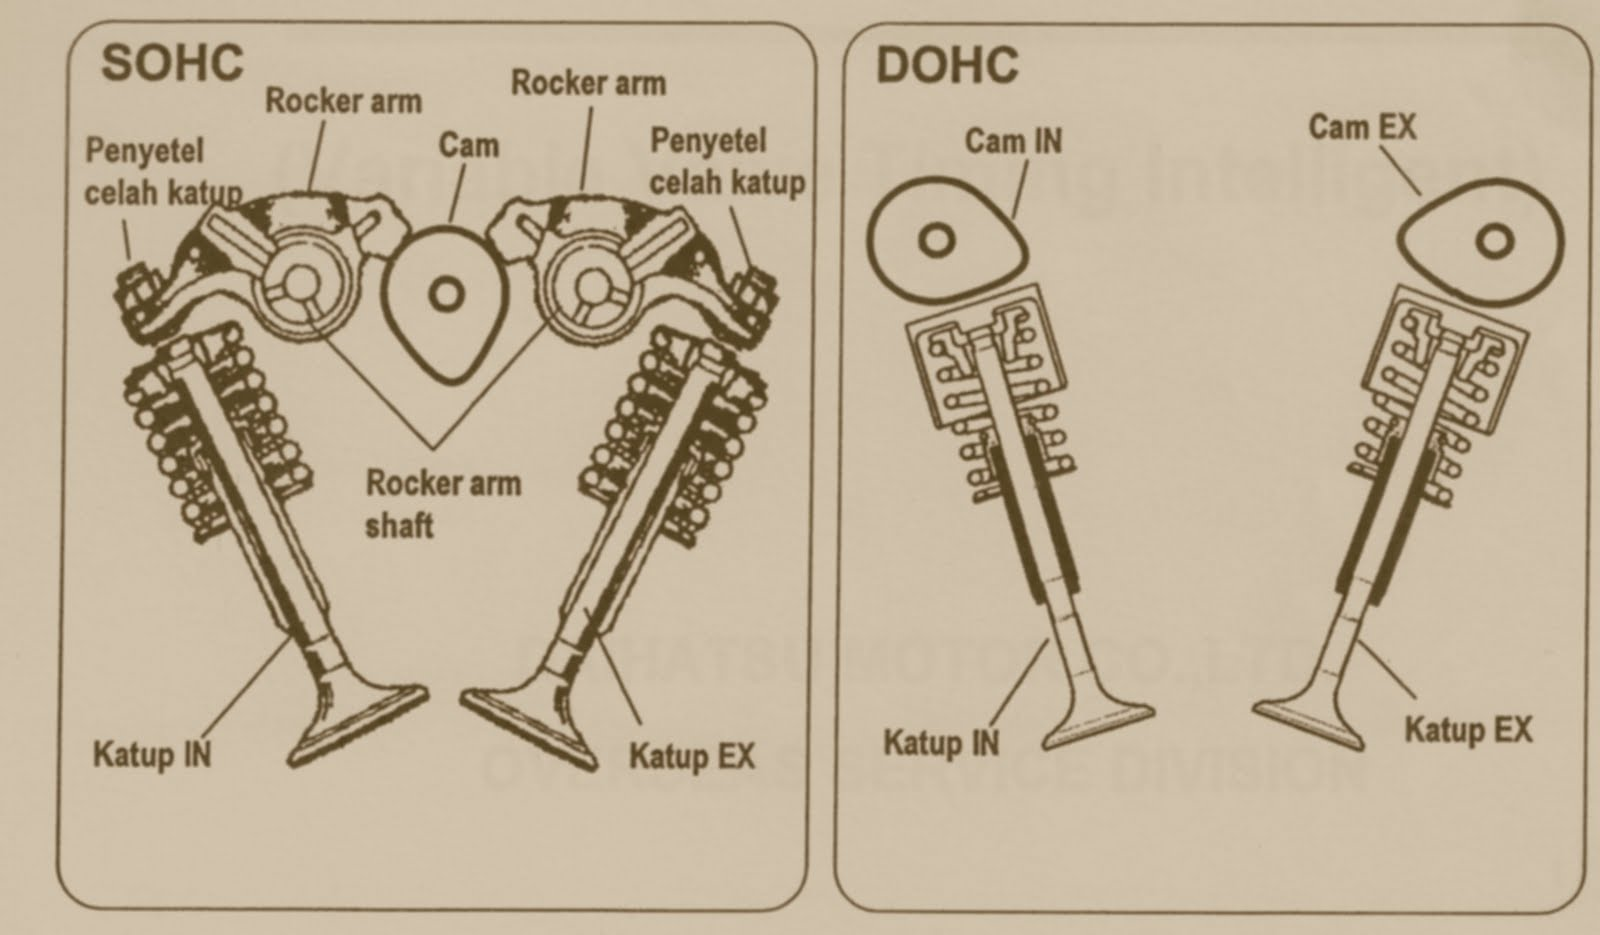 hight resolution of dohc vs sohc engines all you need to know news articles overhead valve train diagram double overhead cam diagram